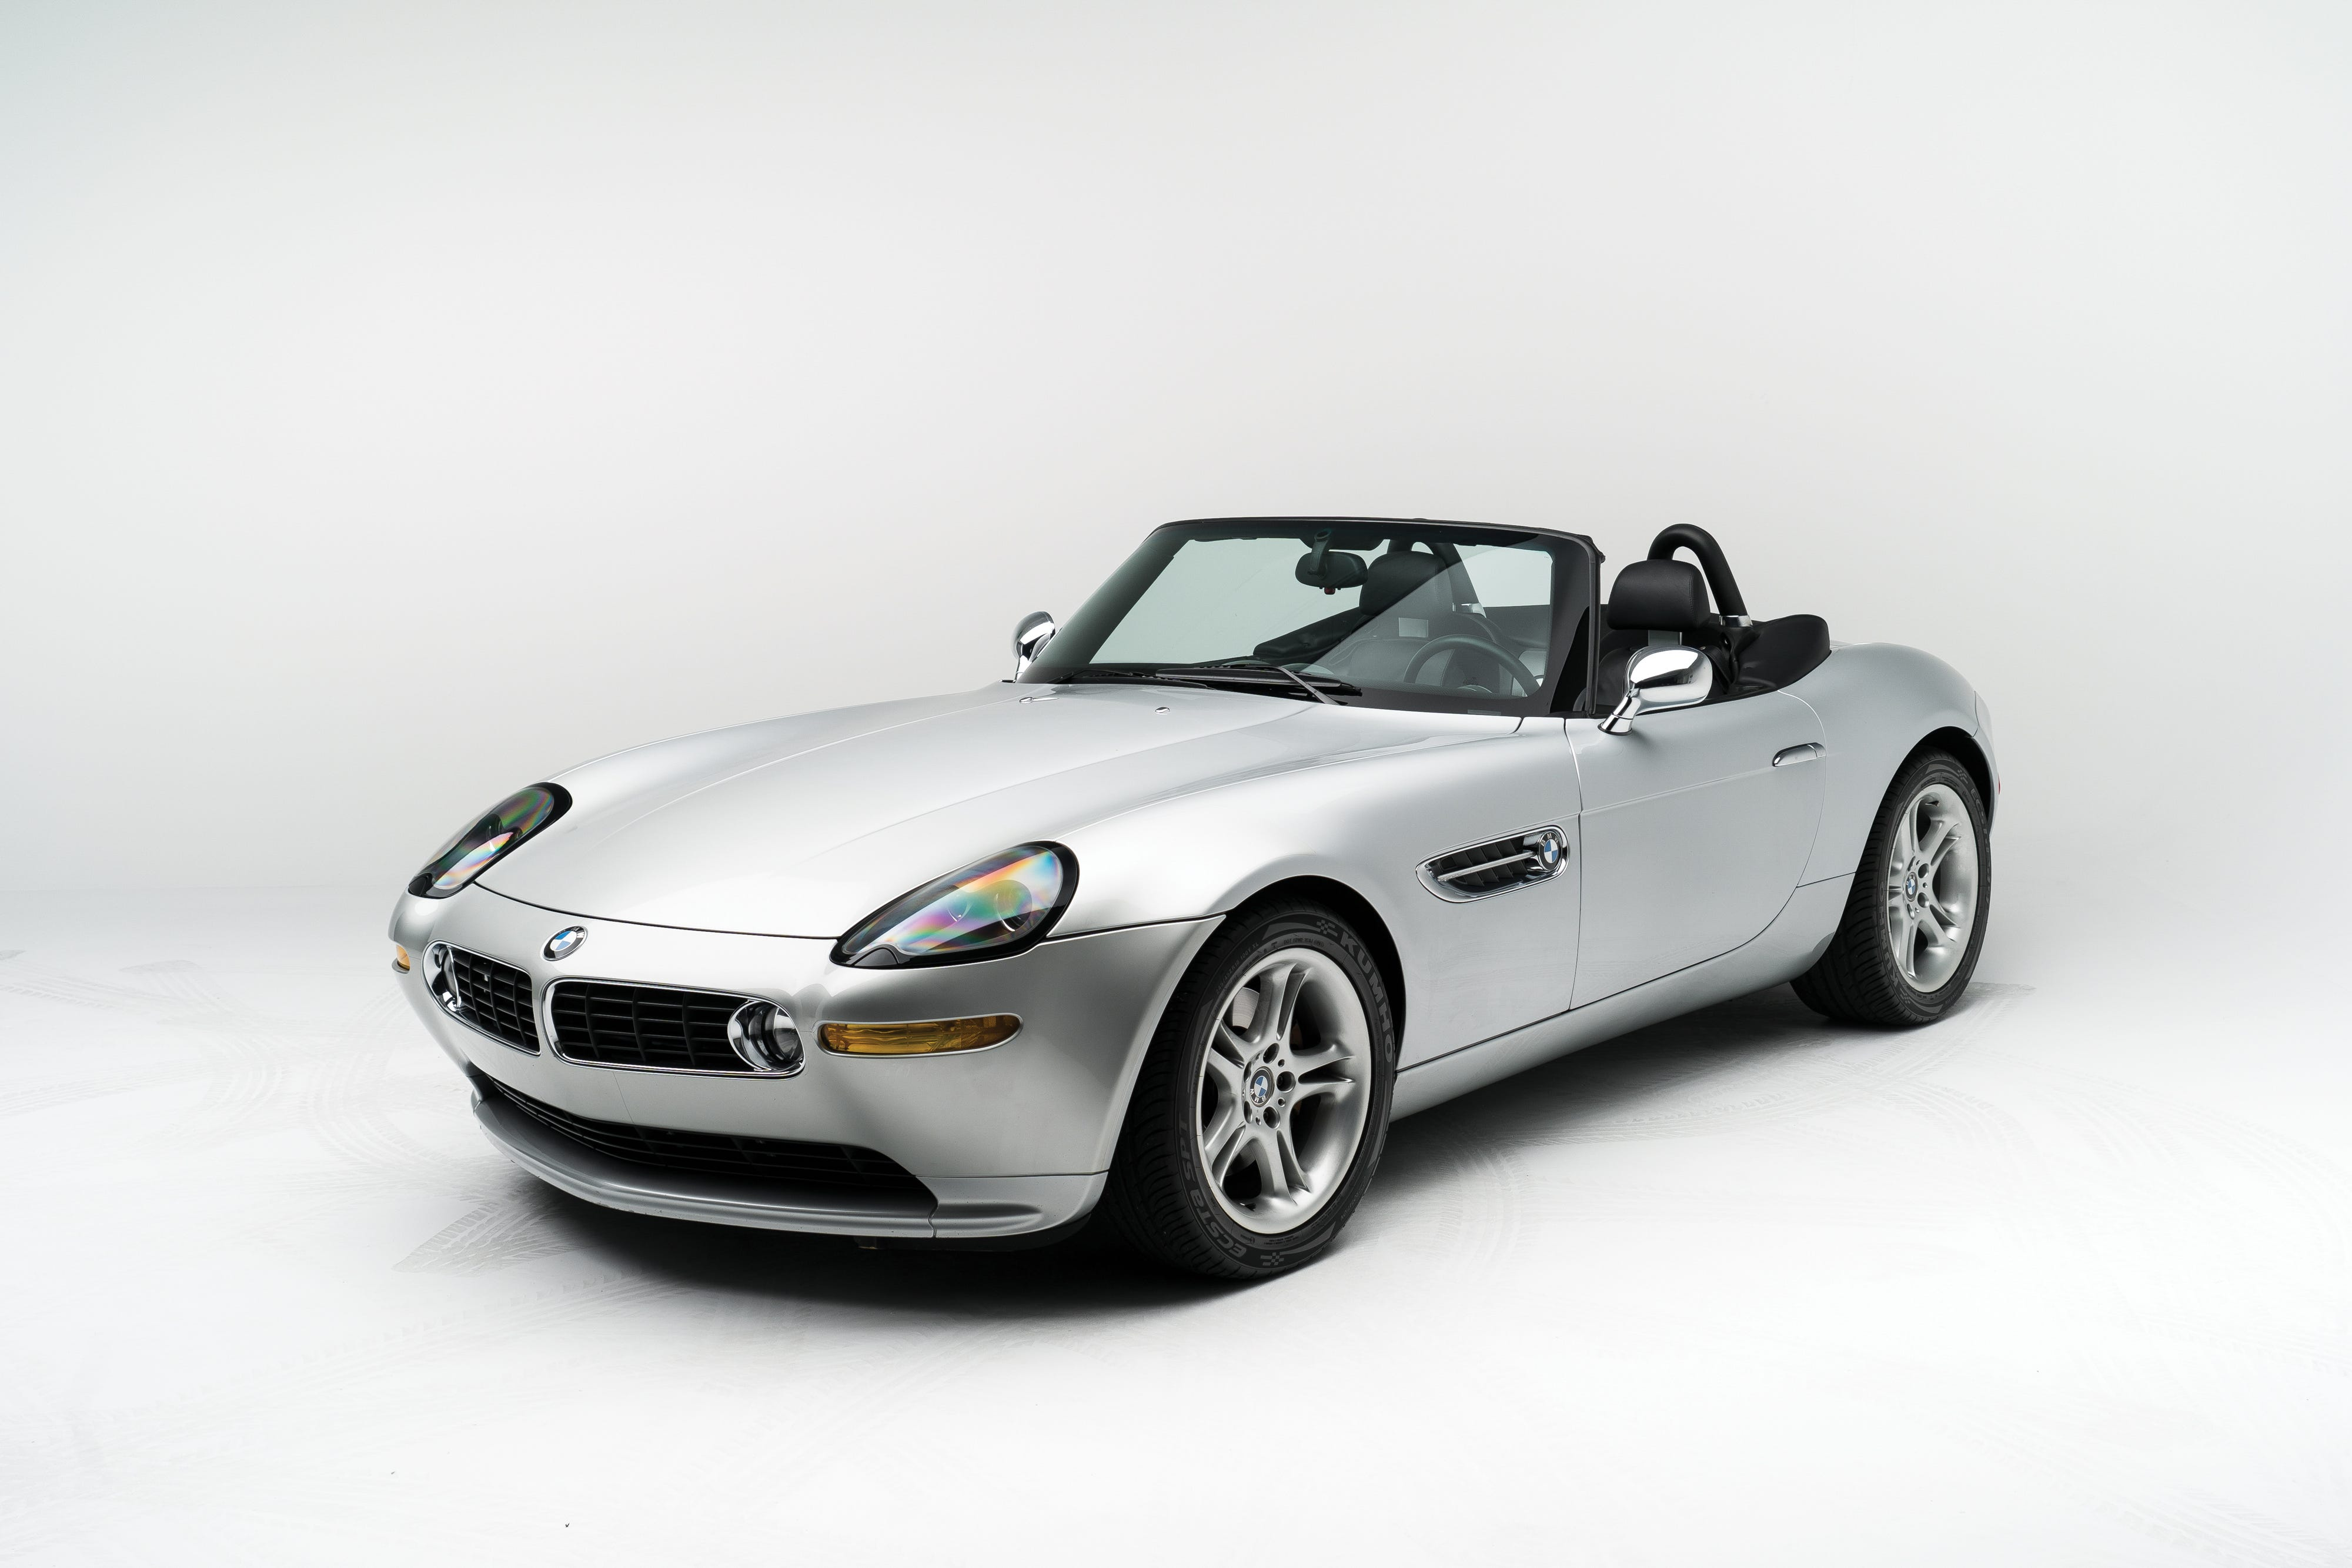 Car Auction Apps >> Apple founder Steve Jobs's BMW Z8 hits the auction block